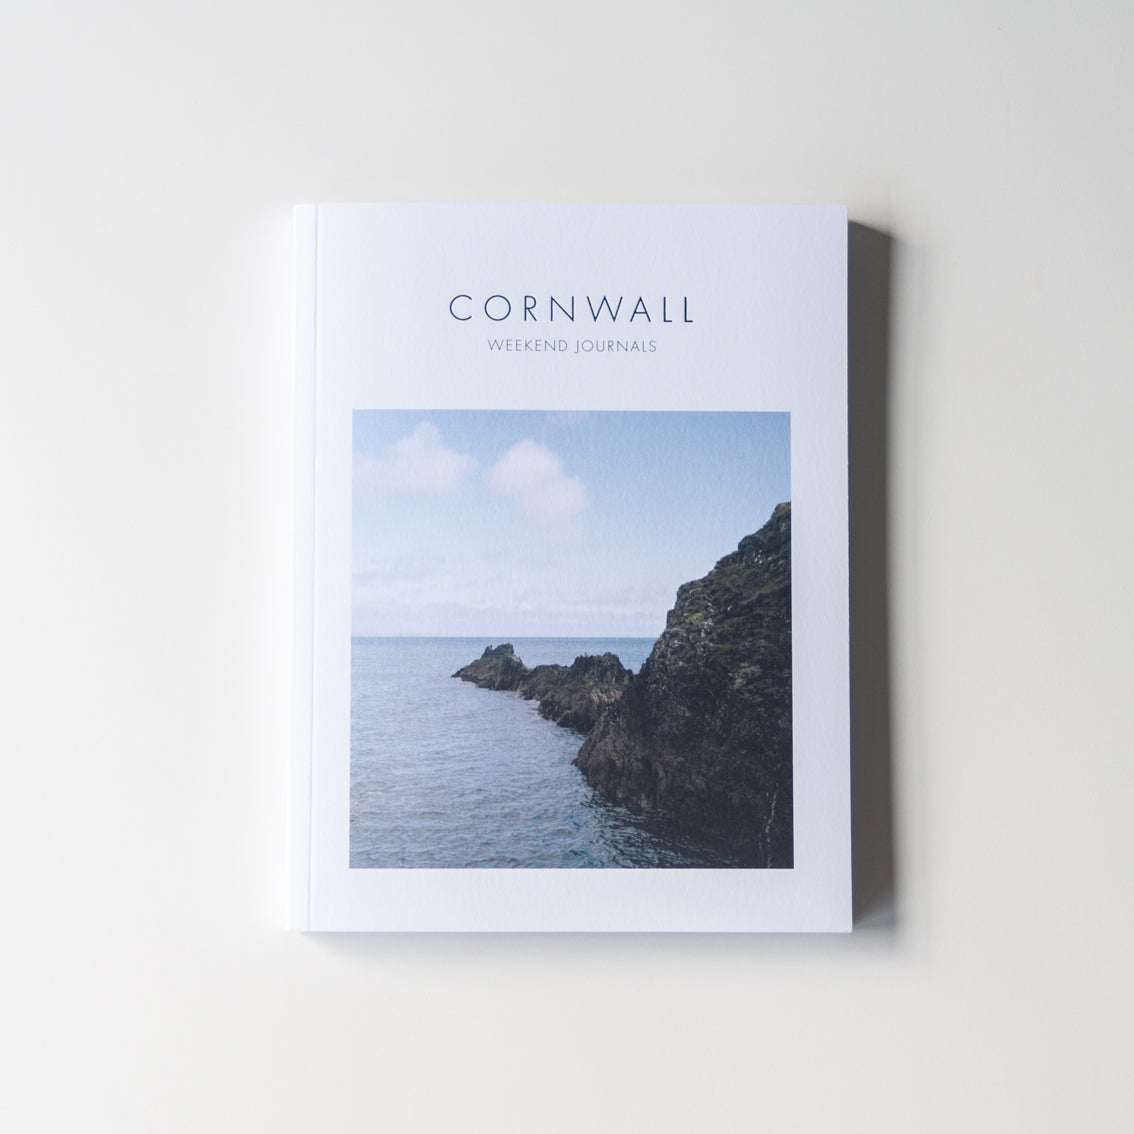 Weekend Journals - Cornwall (3rd Edition, 2019)